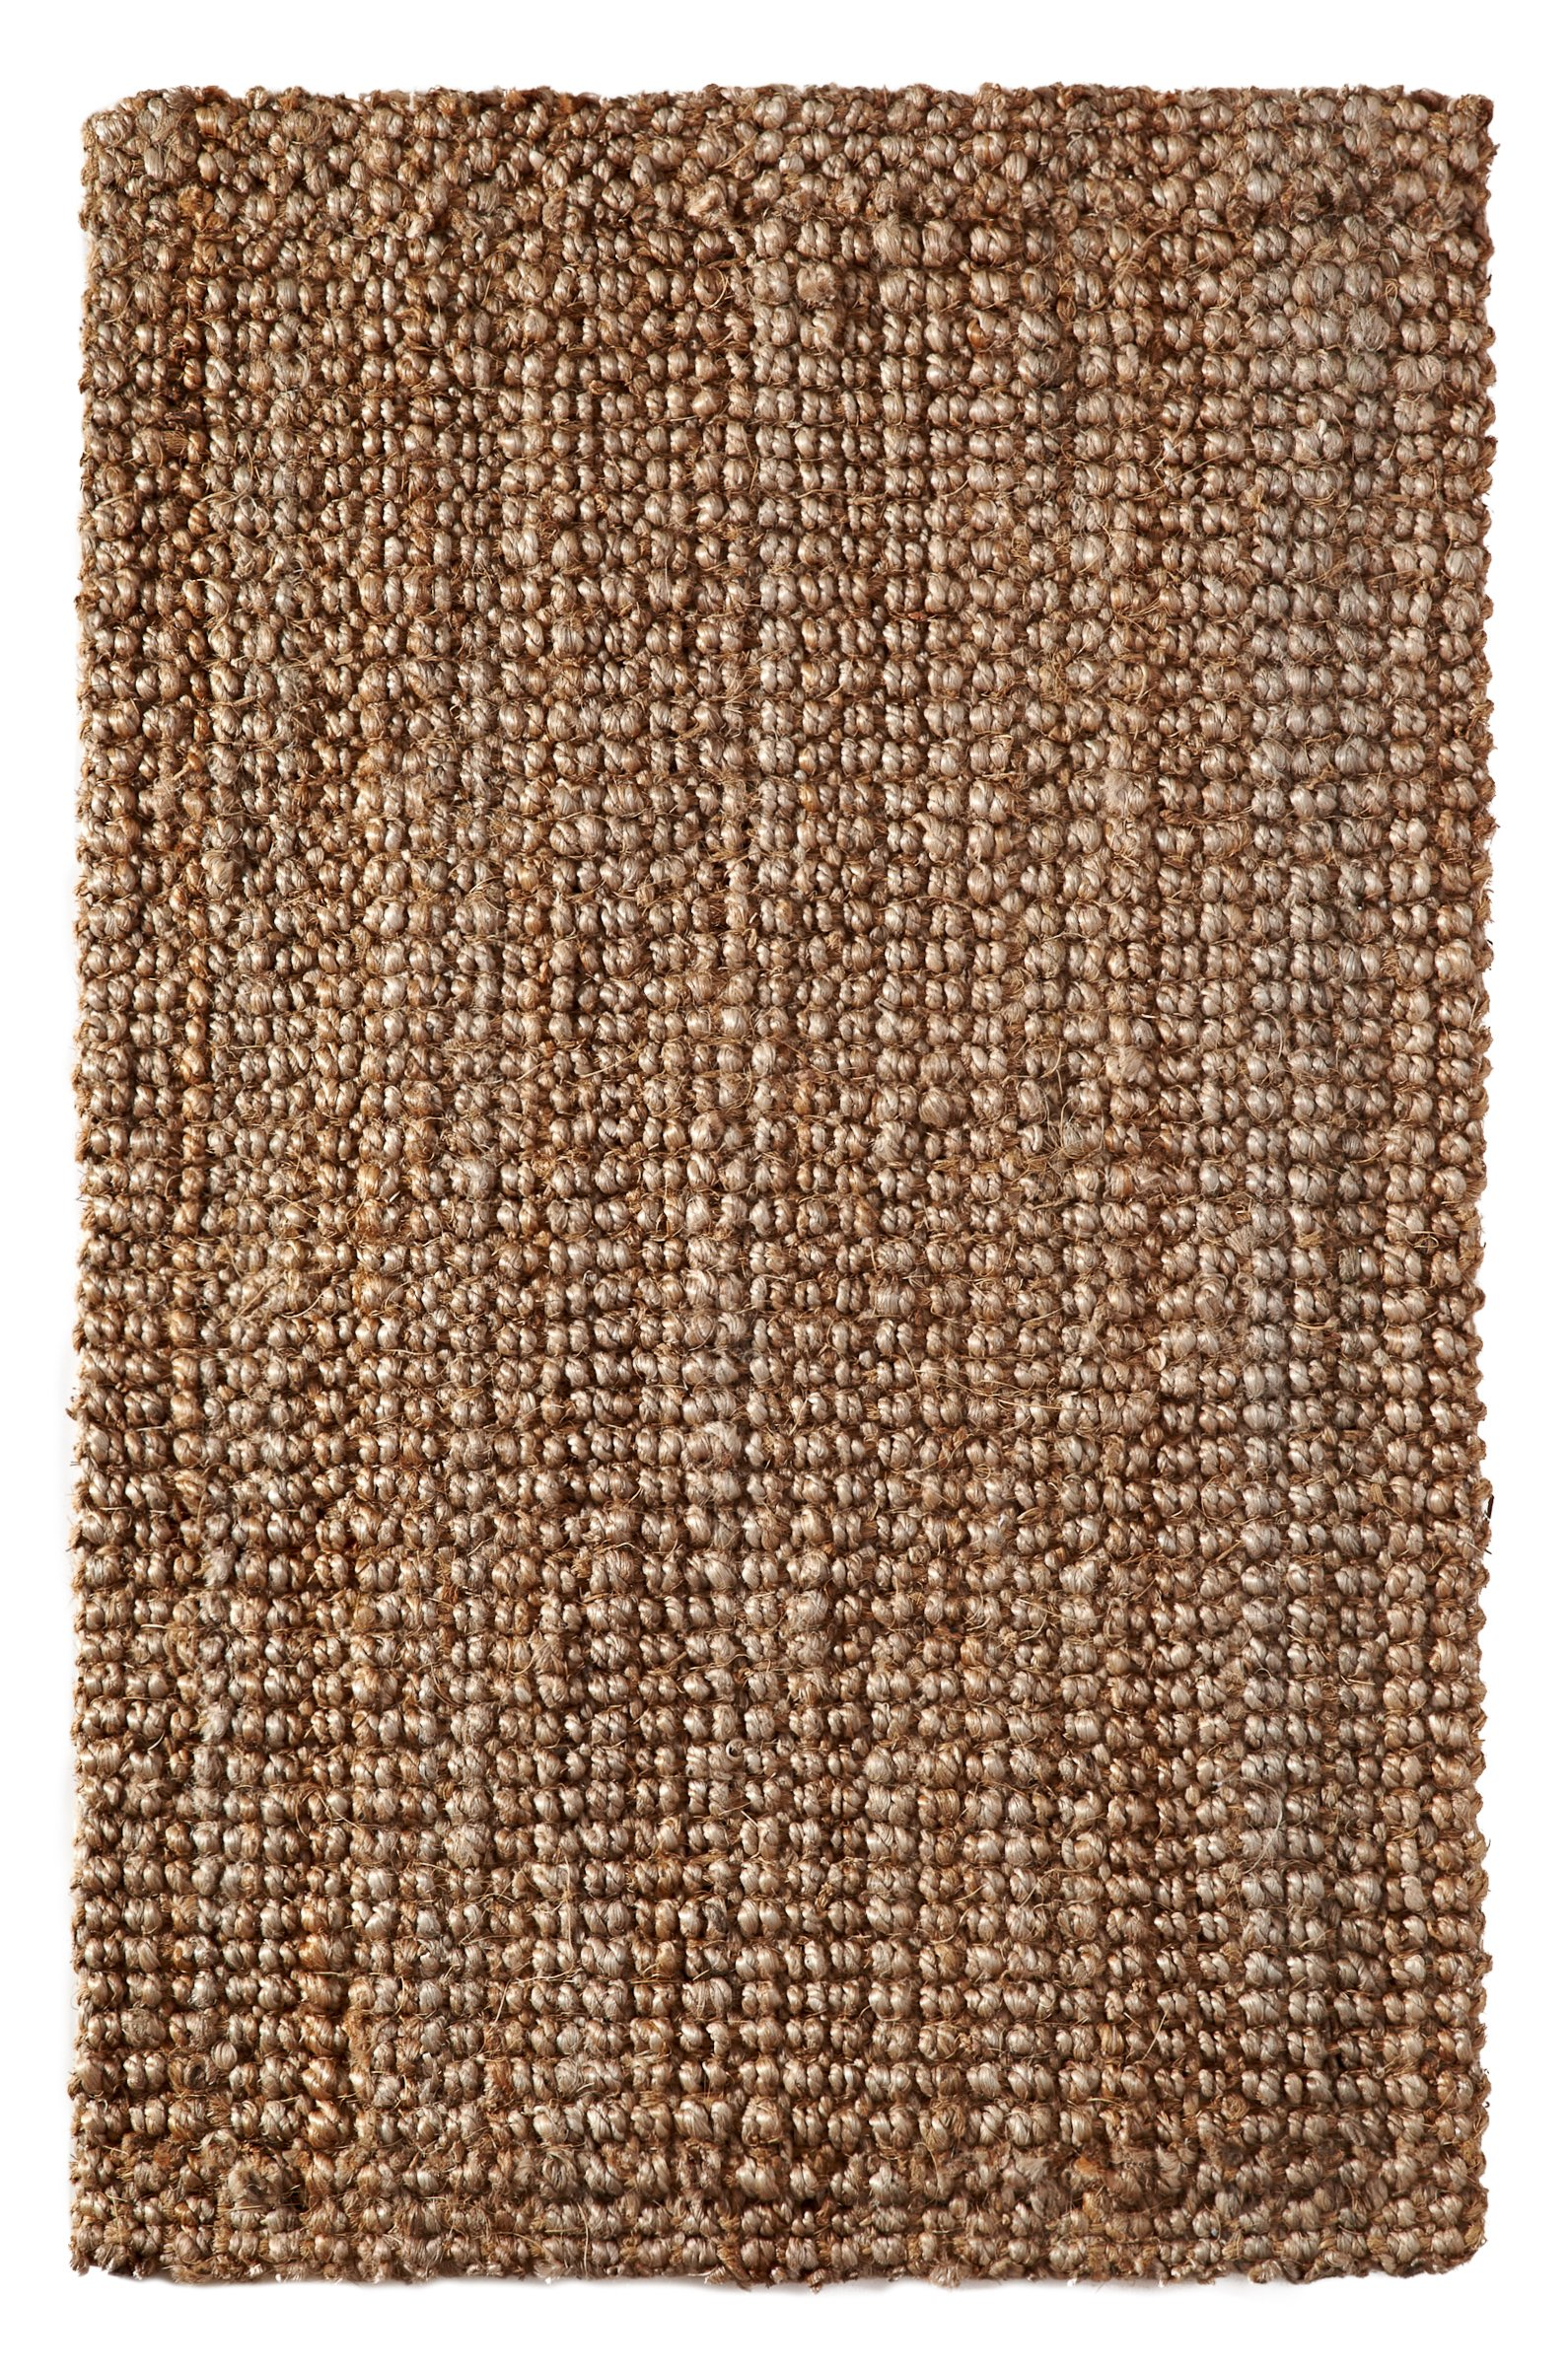 Iron Gate Handspun Jute Area Rug 2x3 Hand woven by Skilled Artisans, 100% Natural eco-friendly Jute yarns, Thick ribbed construction, Reversible for double the wear, Rug pad recommended by Iron Gate